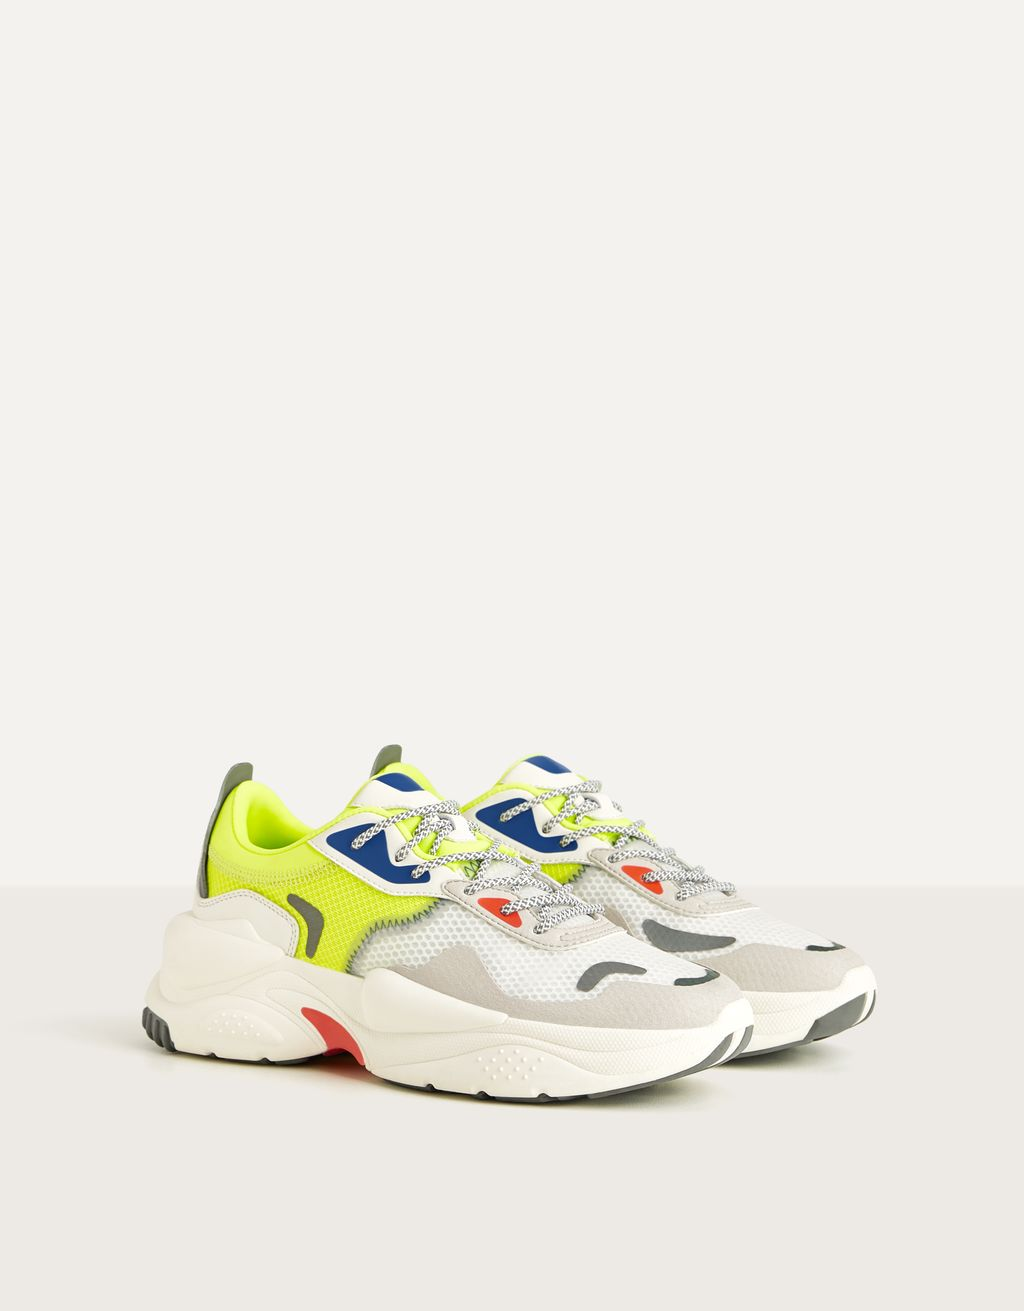 Translucent trainers with neon details